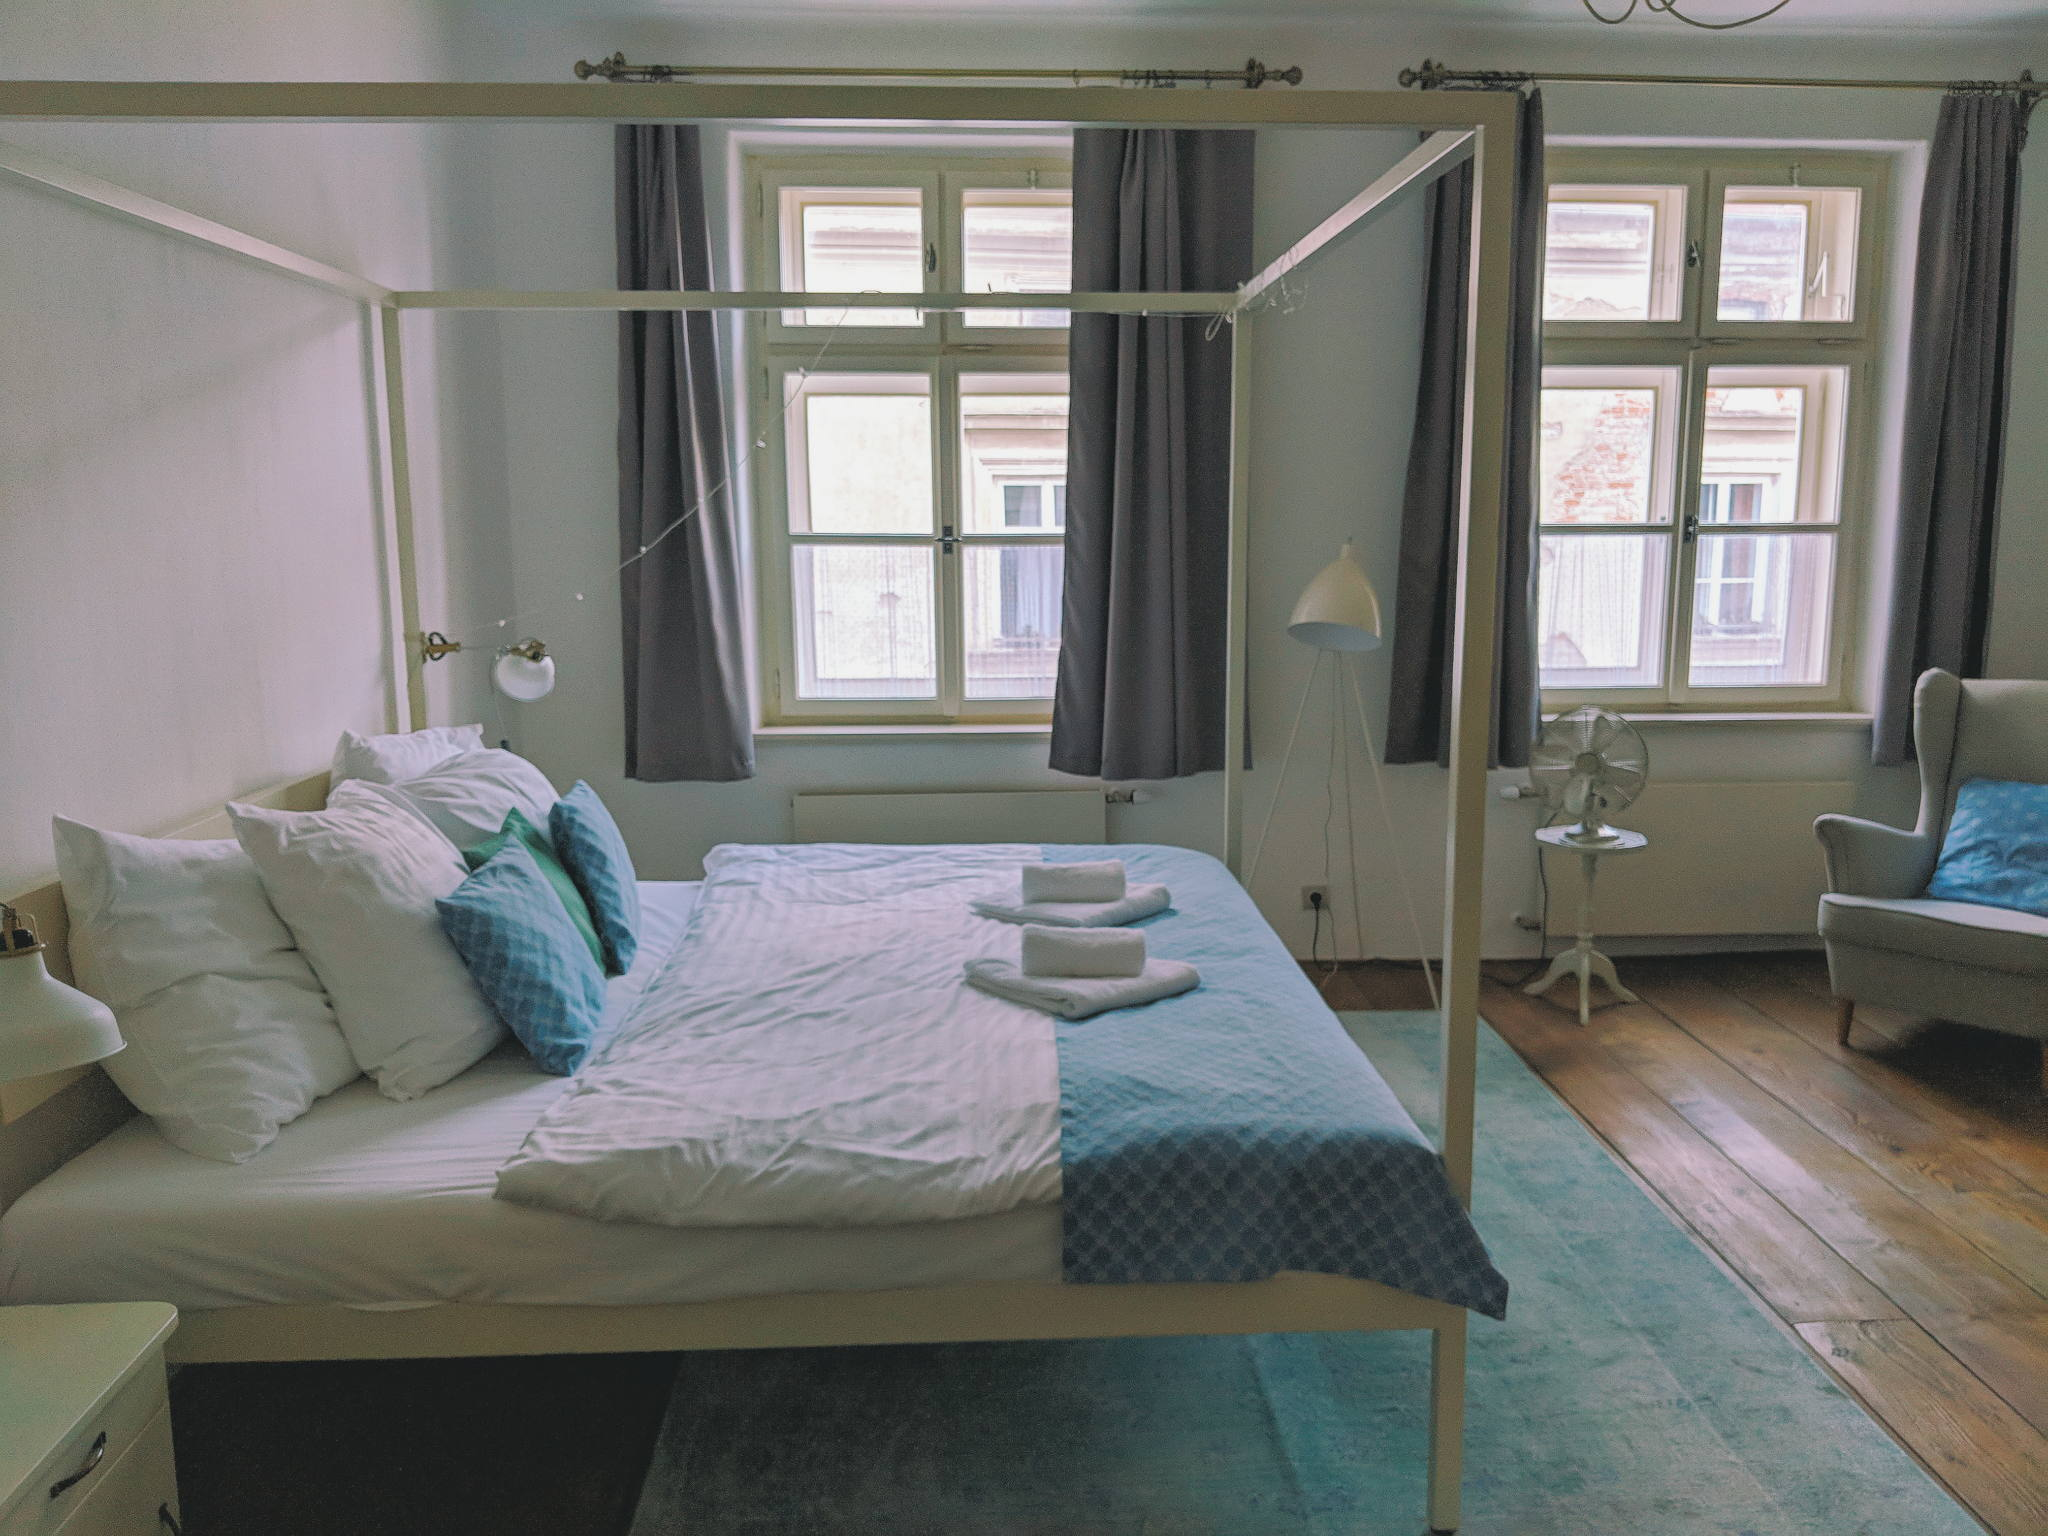 Staying at Ms Sophie's in Olomouc, Czech Republic: An Adorable Boutique Hotel 3